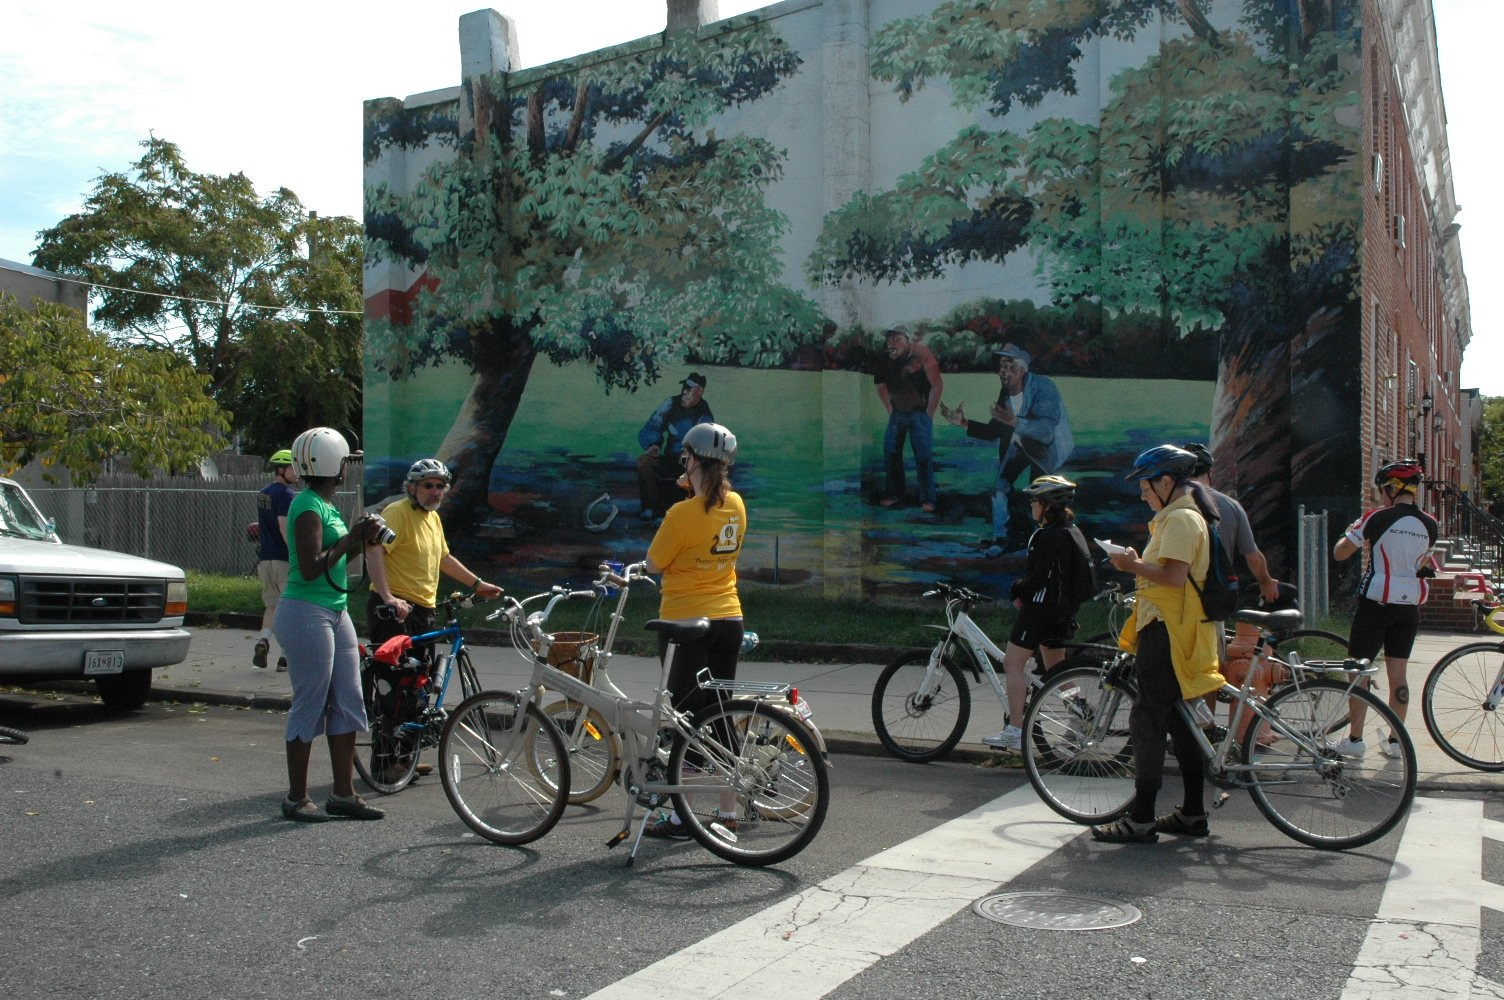 West-Baltimore-Murals-Bike-tour-2.jpg